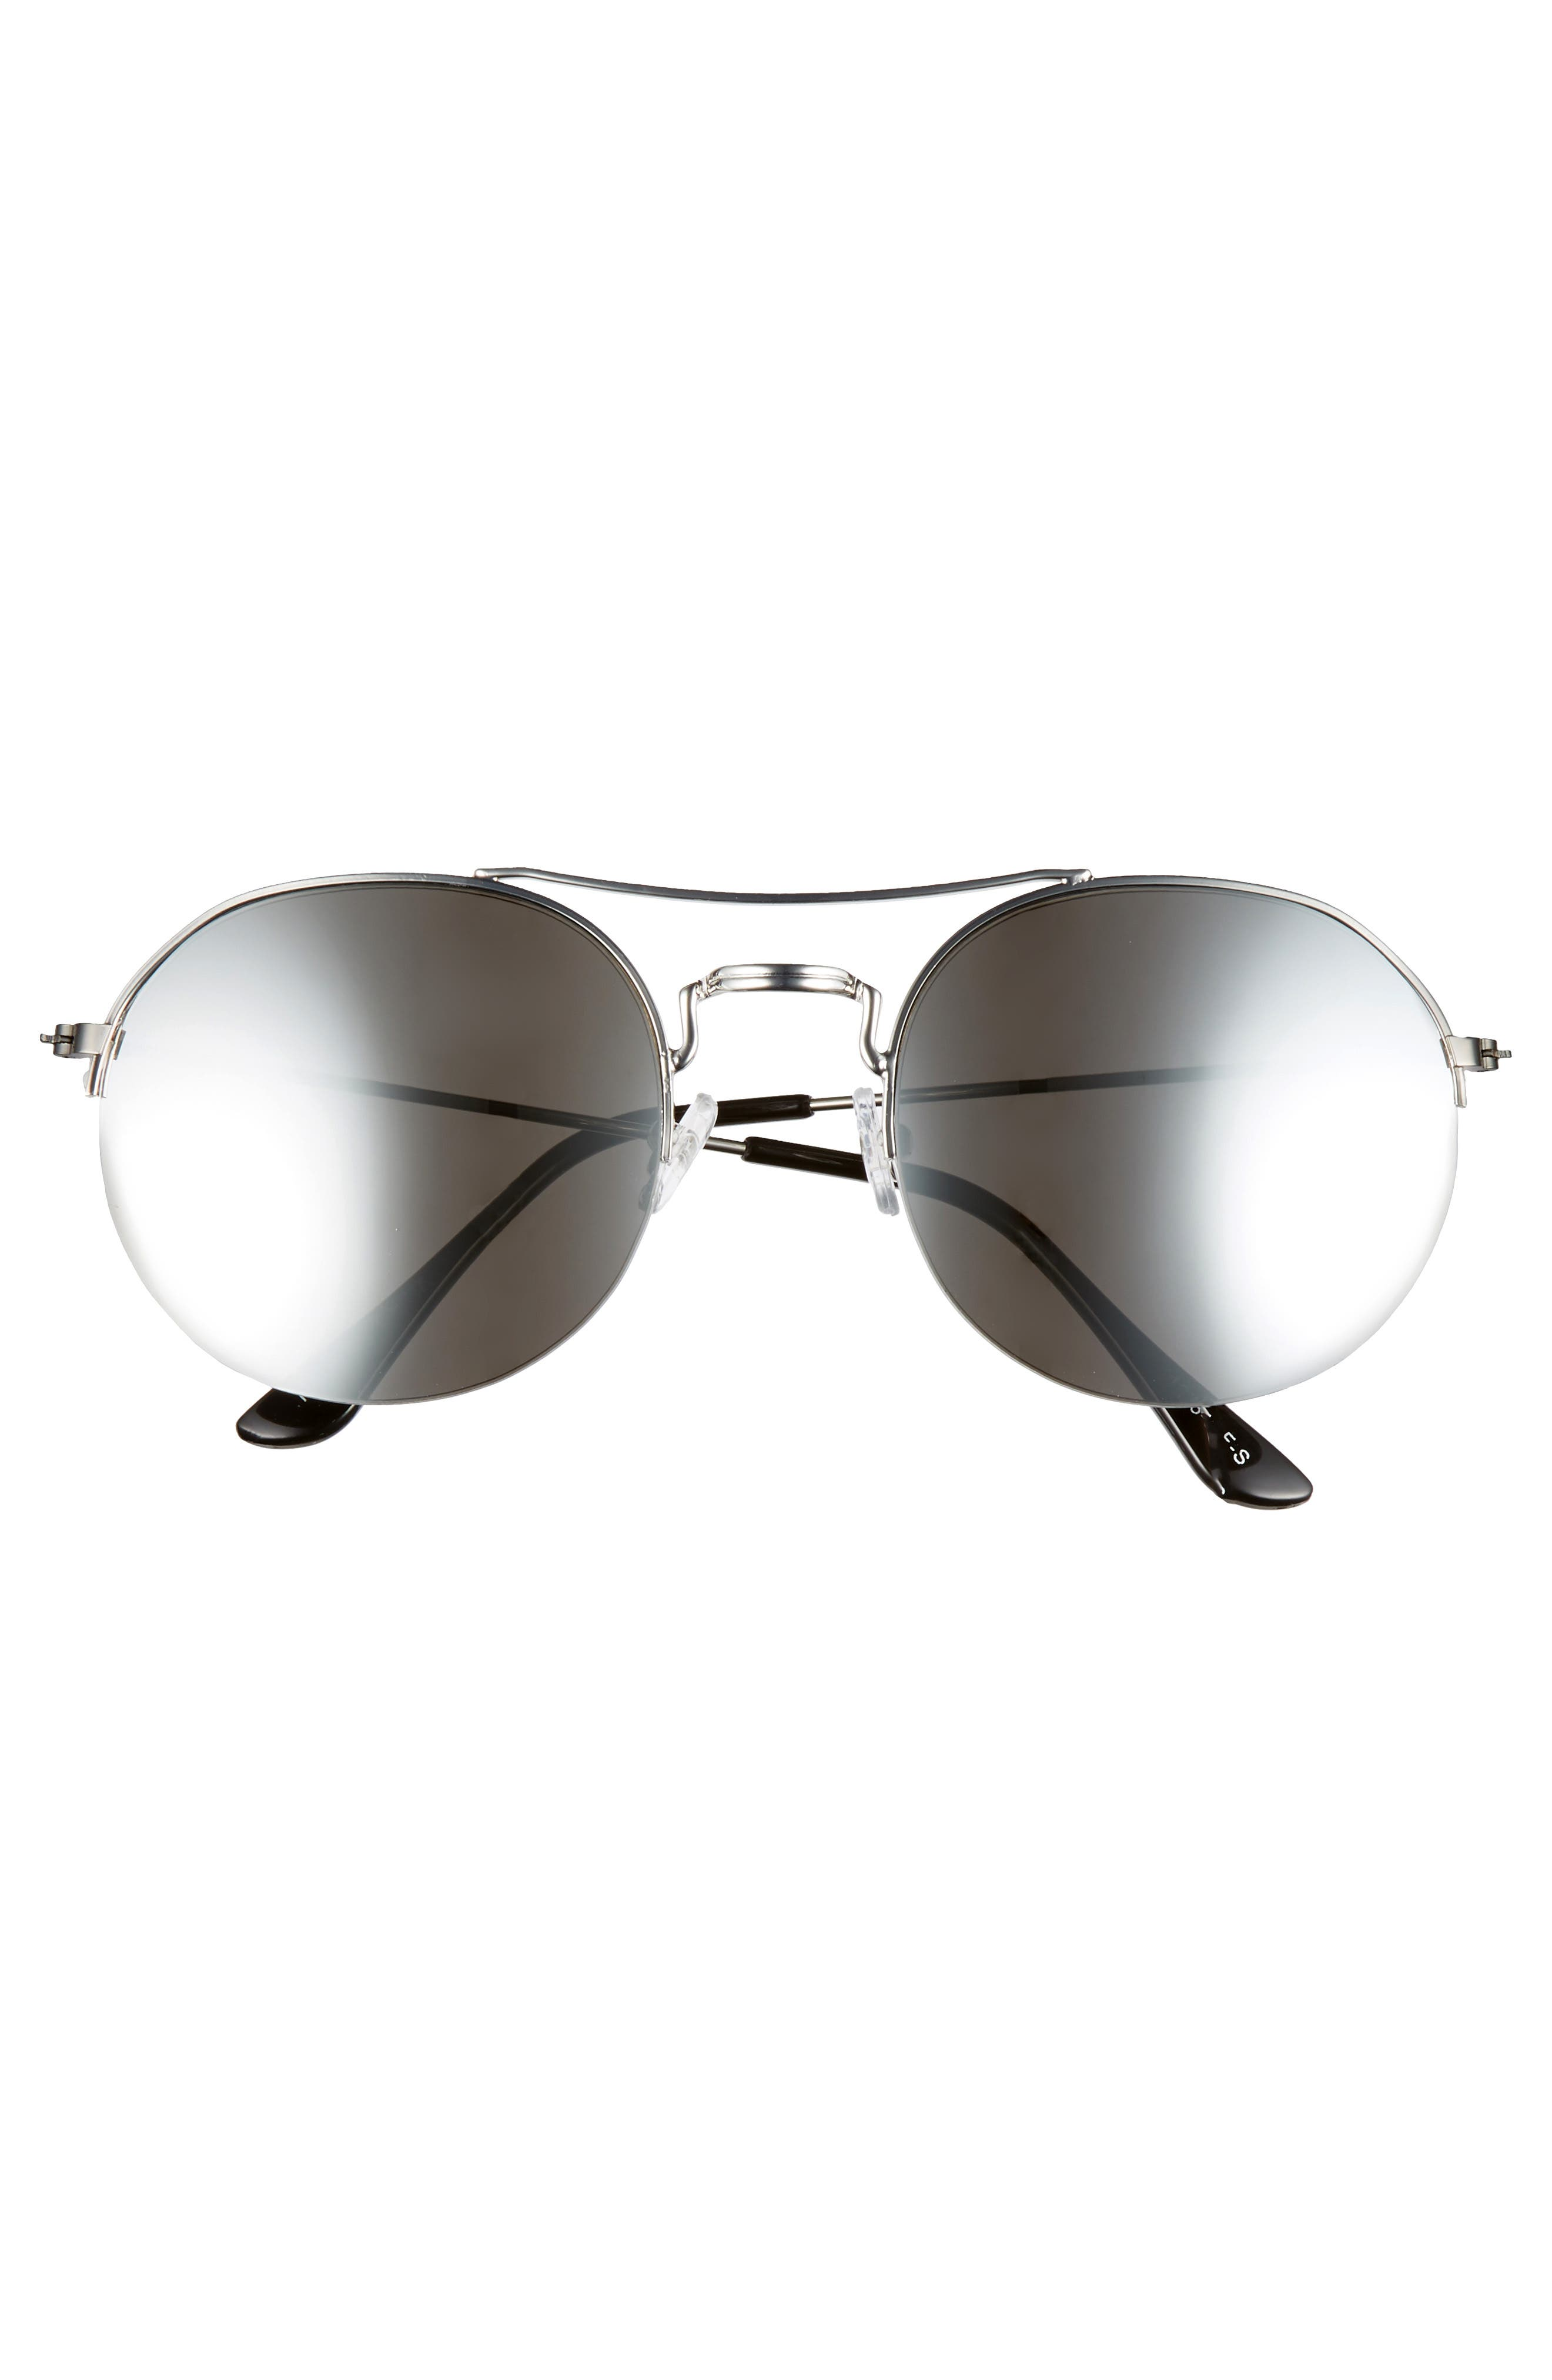 55mm Round Metal Aviator Sunglasses,                             Alternate thumbnail 3, color,                             020